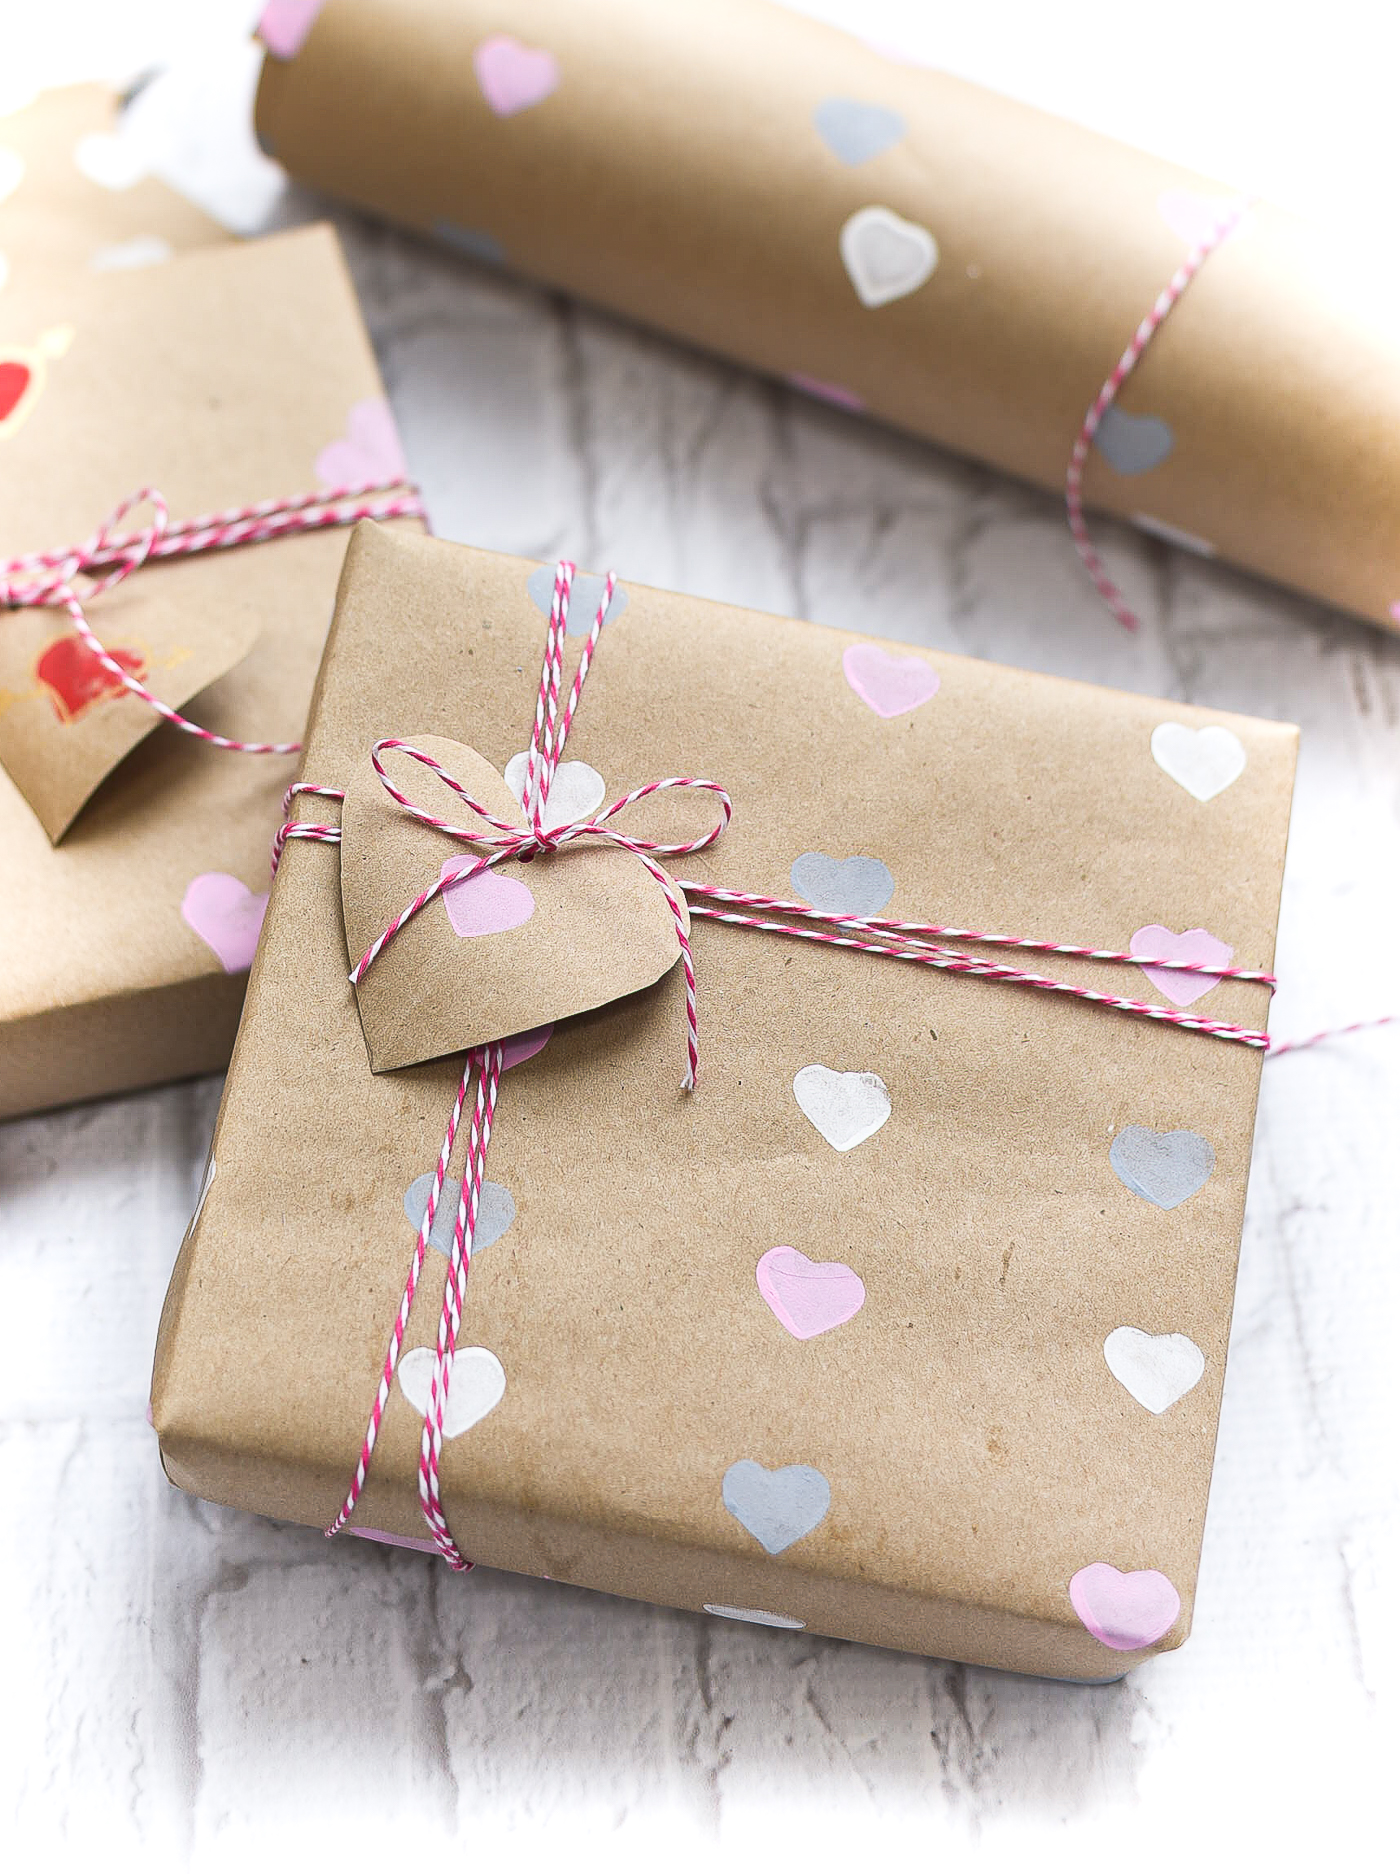 Valentine Day Wrapping Paper DIY - Homemade Wrapping Paper Tutorial for Valentine - Heart Wrapping Paper Made with Heart Stamps.